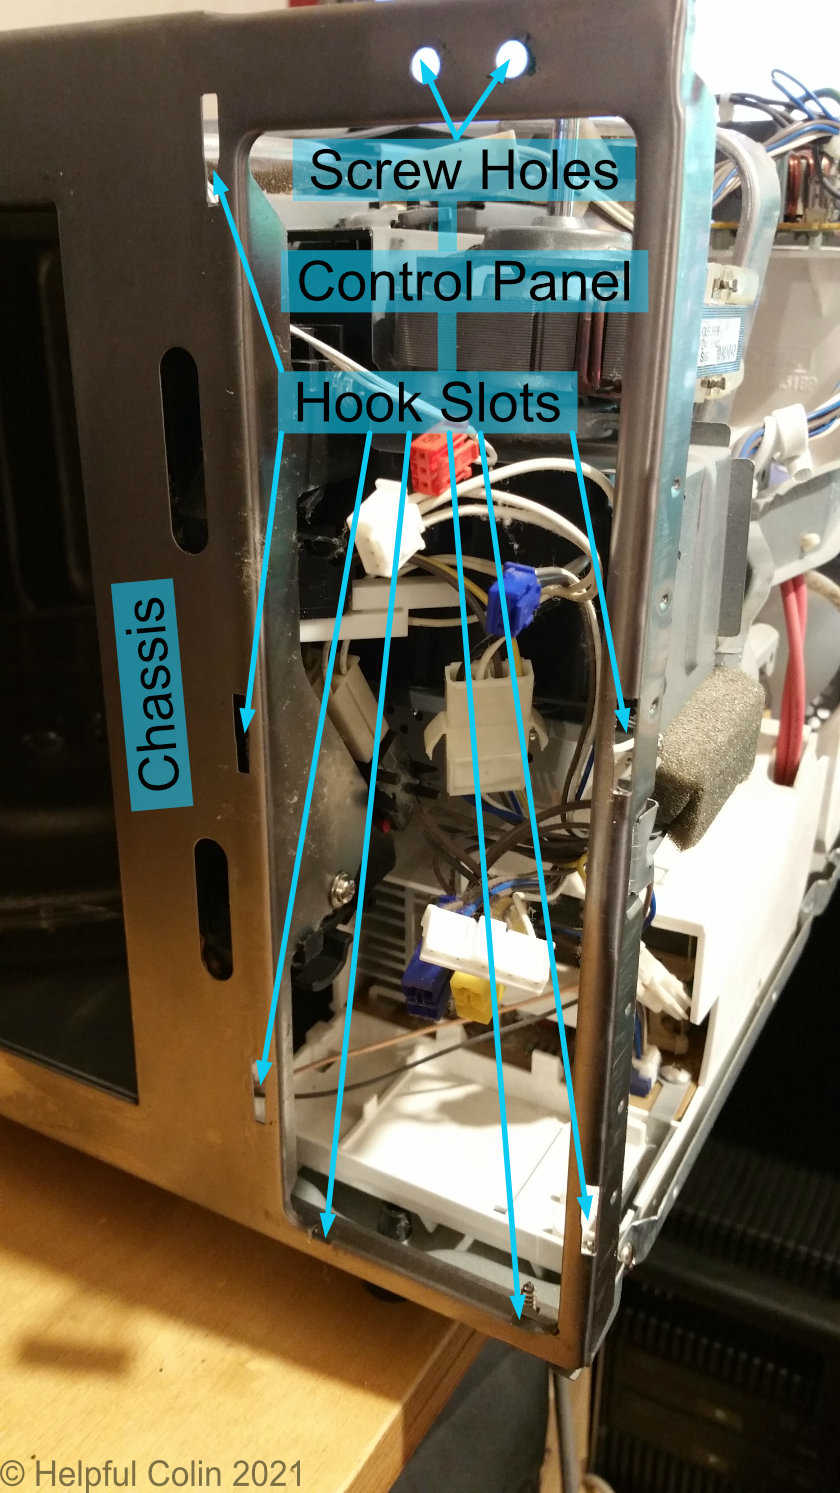 The Chassis holes and slots for the Control Panel screws and hooks